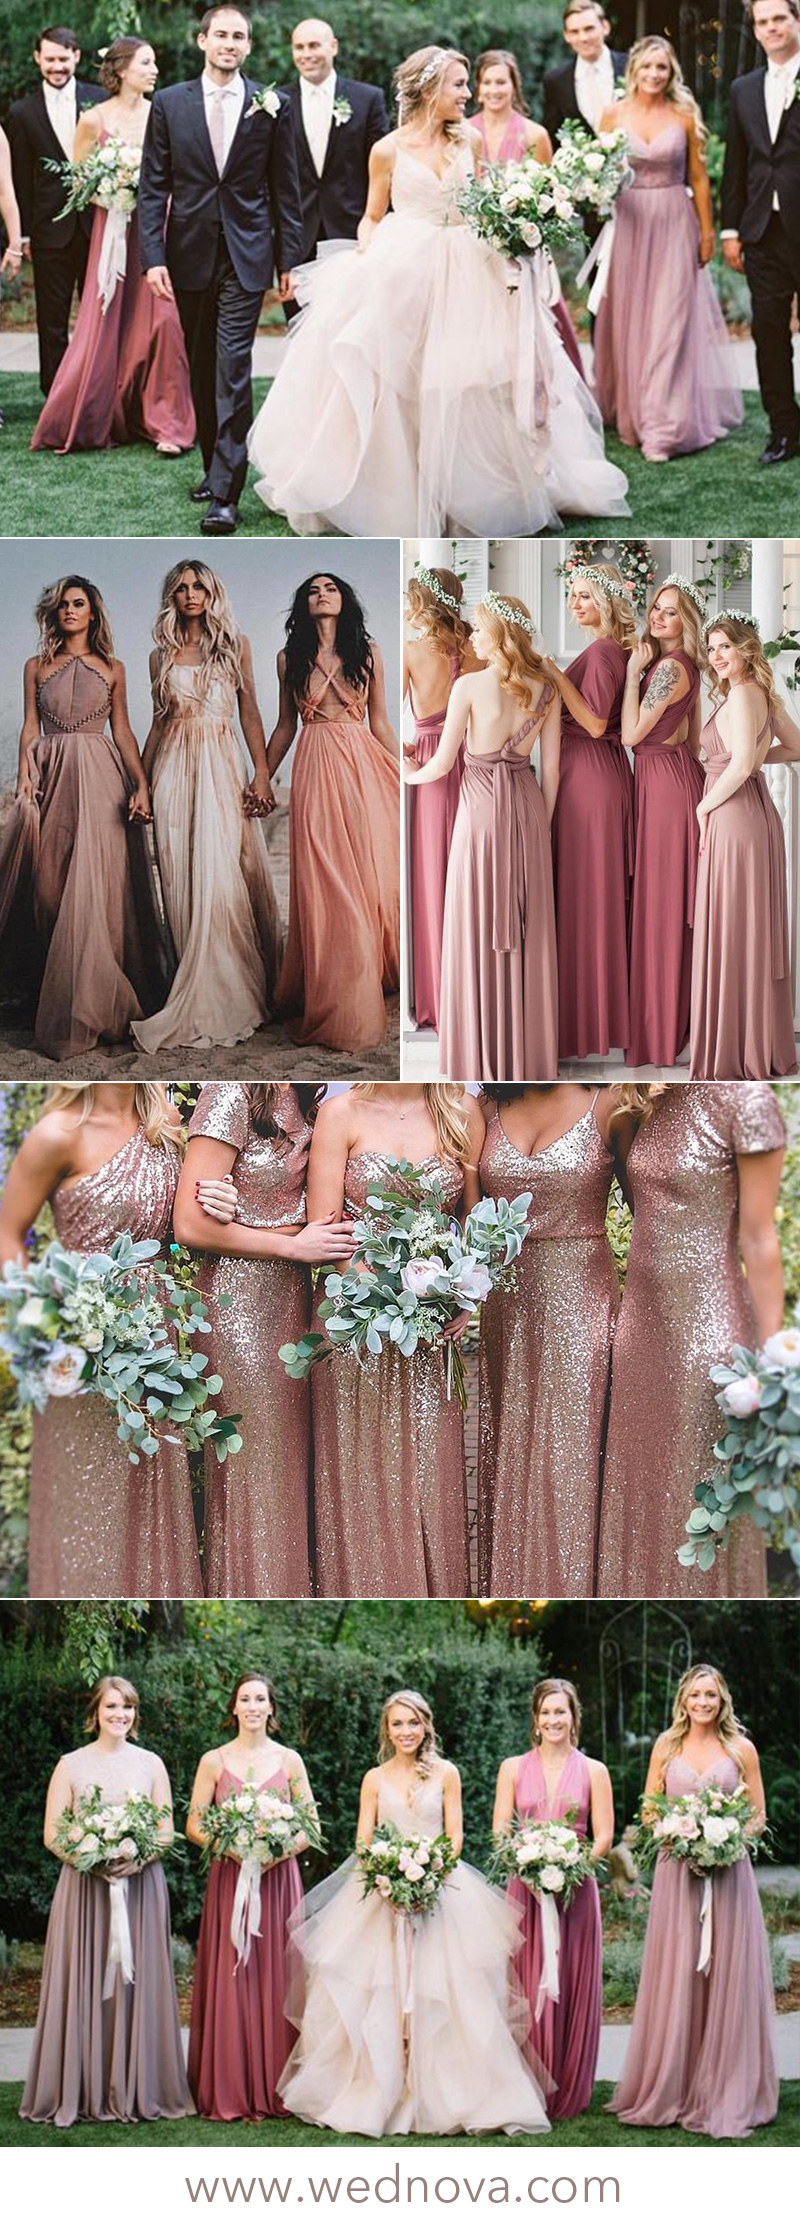 3a912415709 2019 Trending  15 Stunning Dusty Rose Bridesmaid Dresses Ideas You ...